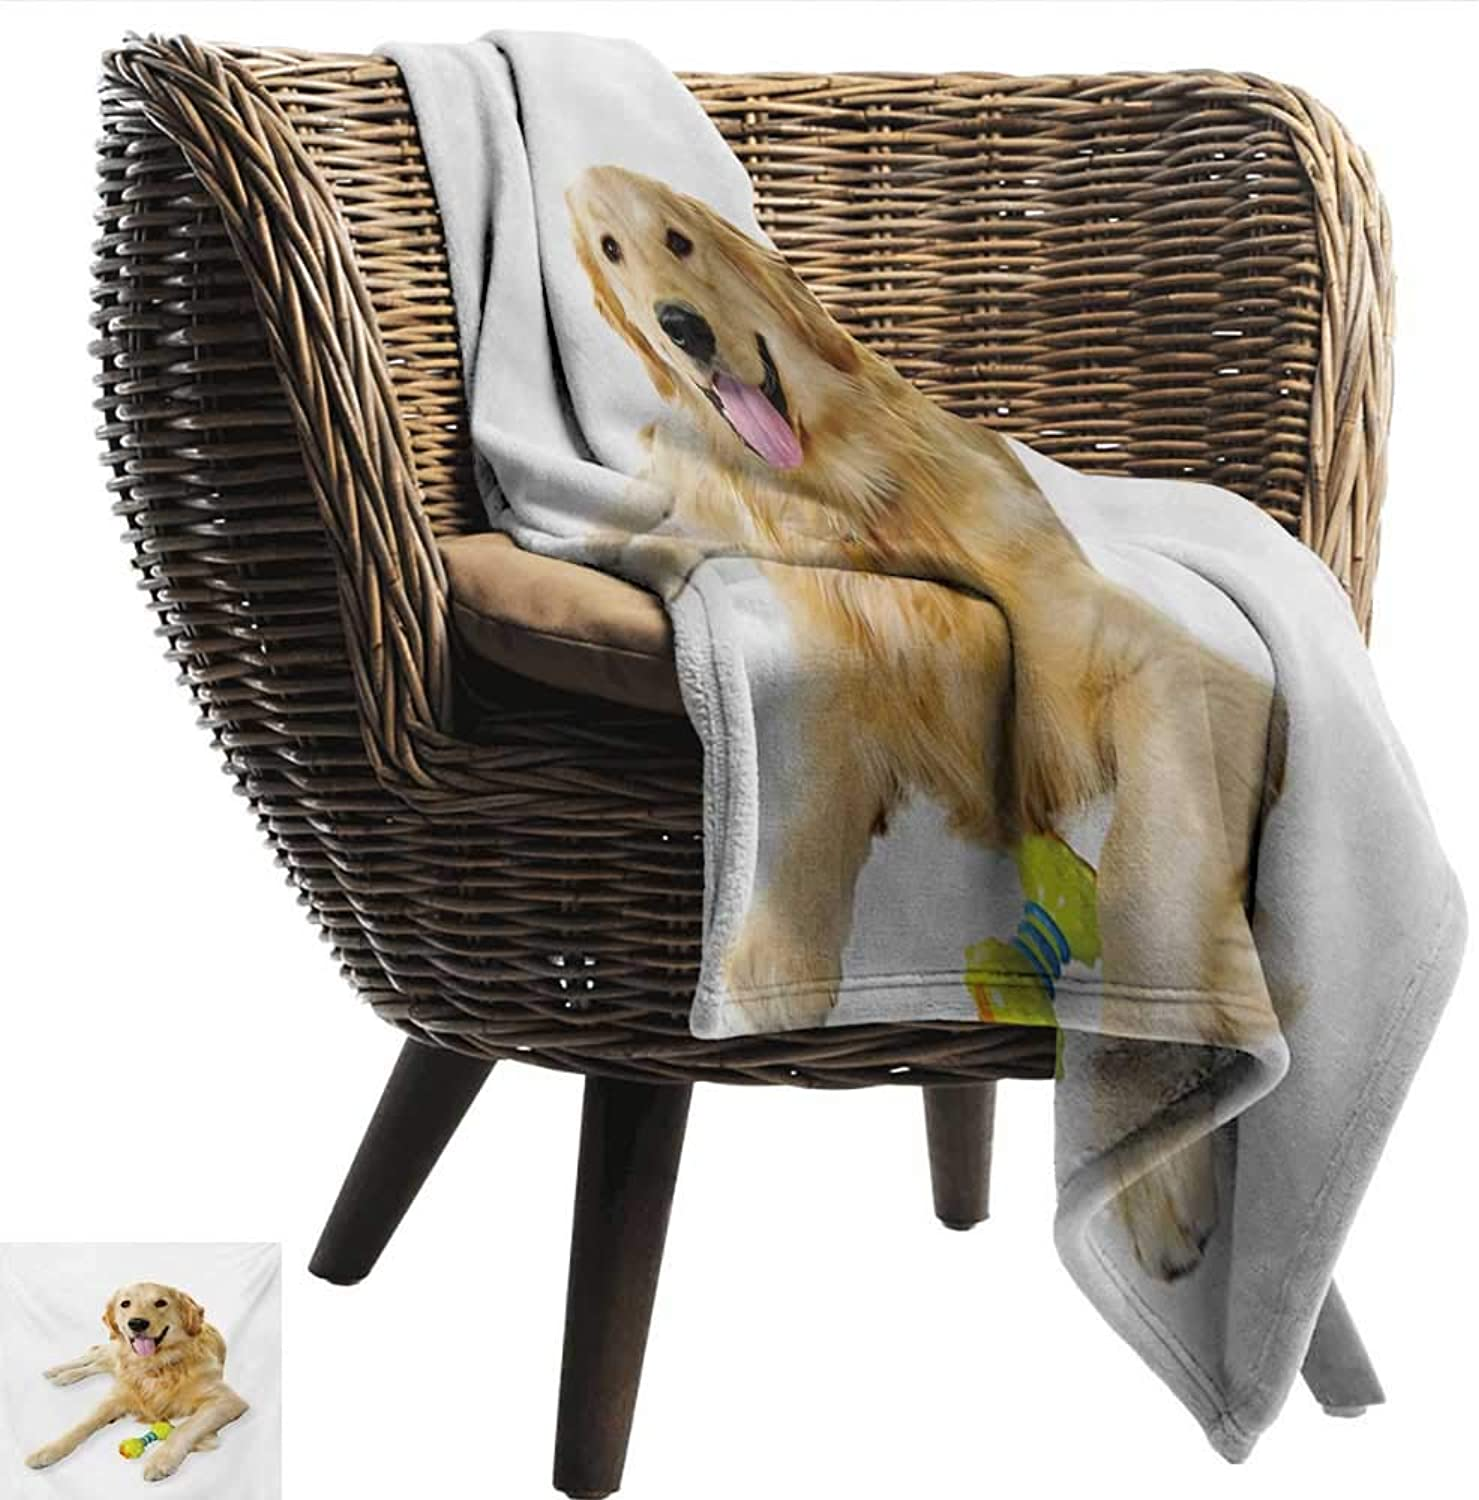 EwaskyOnline golden Retriever Flannel Blanket Pet Dog Laying Down with Toy Friendly Domestic Puppy Playful Companion Sofa Warm Bed 40  W x 60  L Multicolor